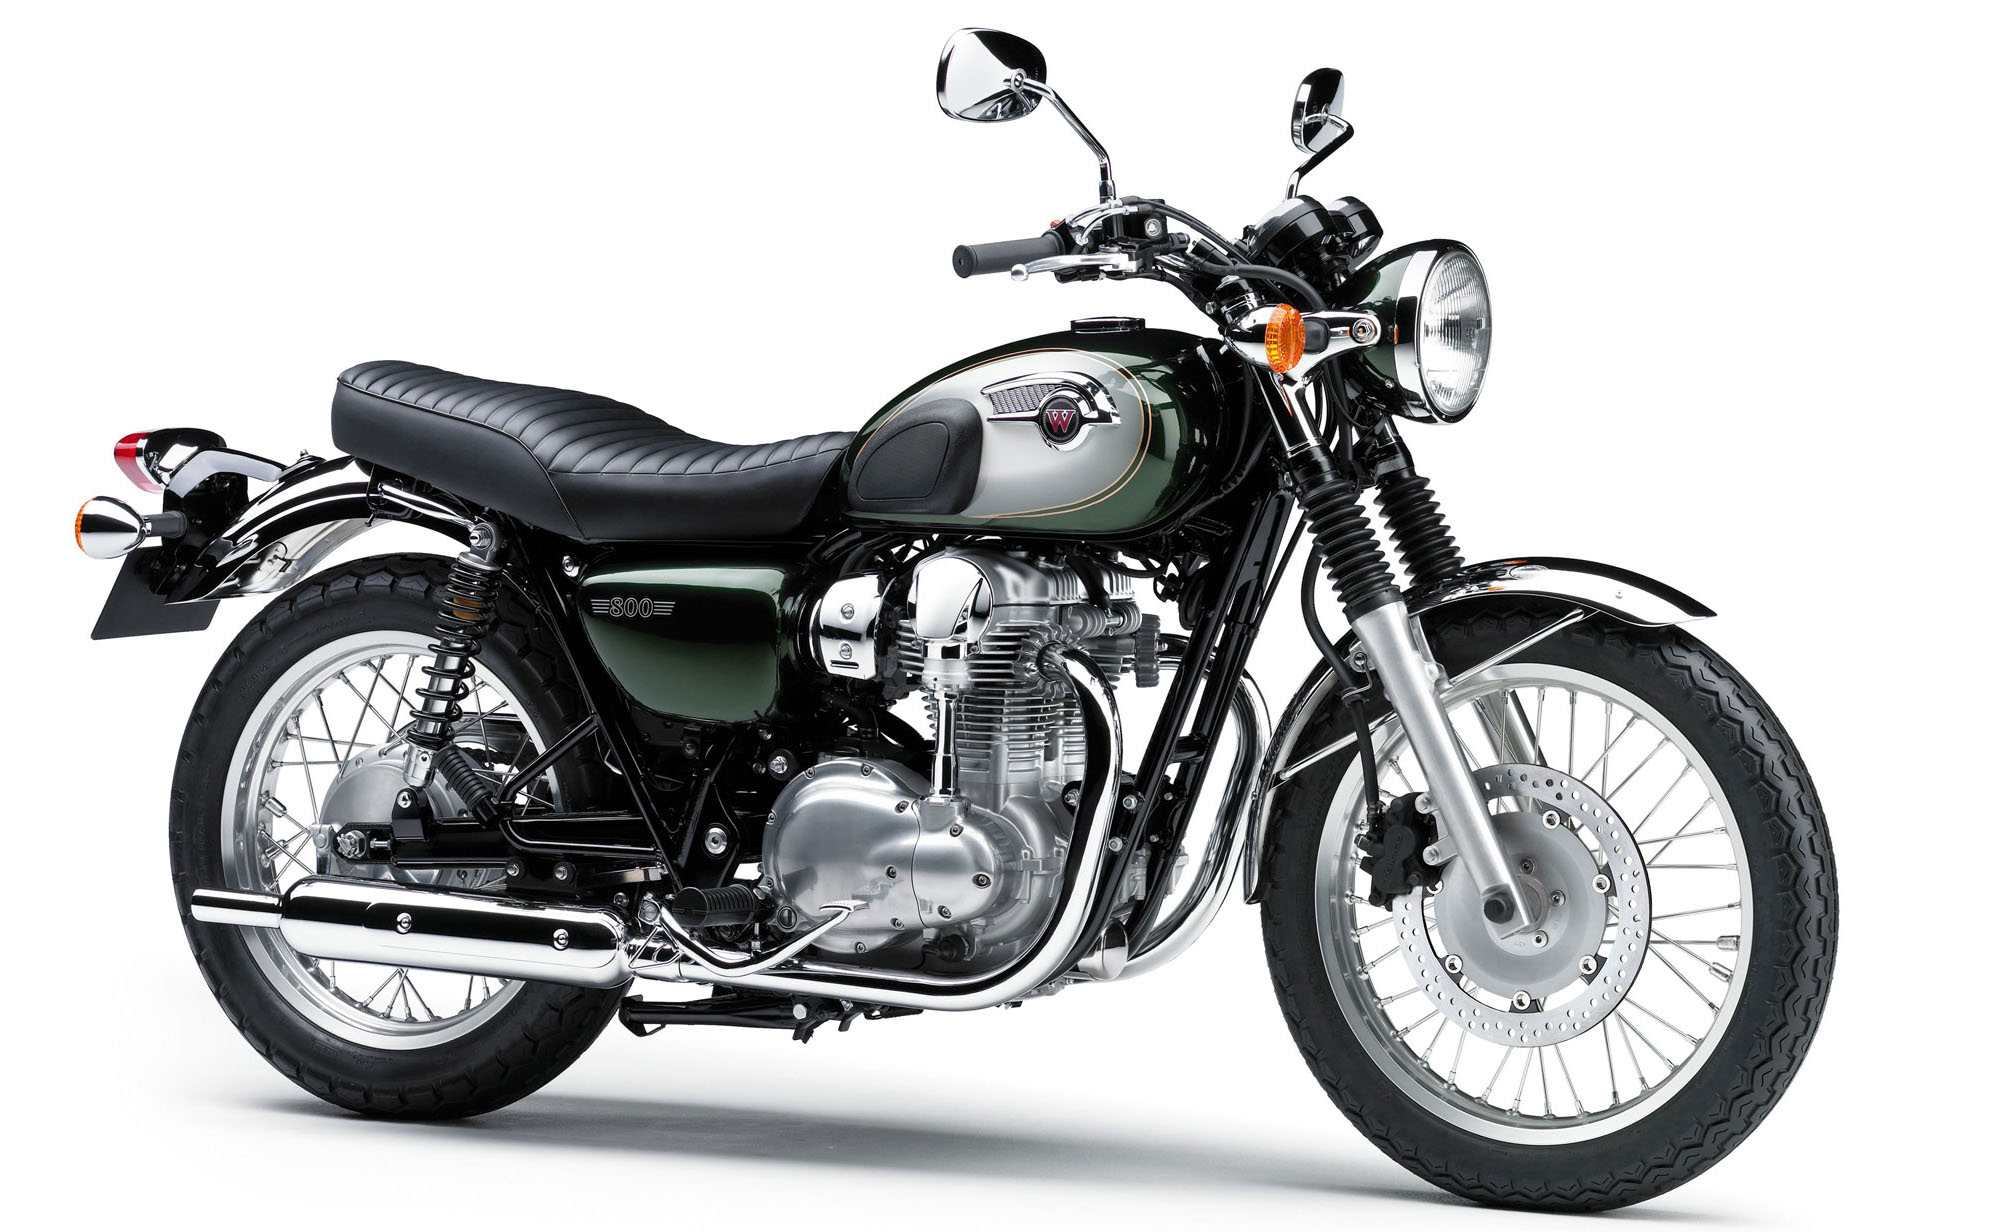 Kawasaki W800 Cafe Style images #86155